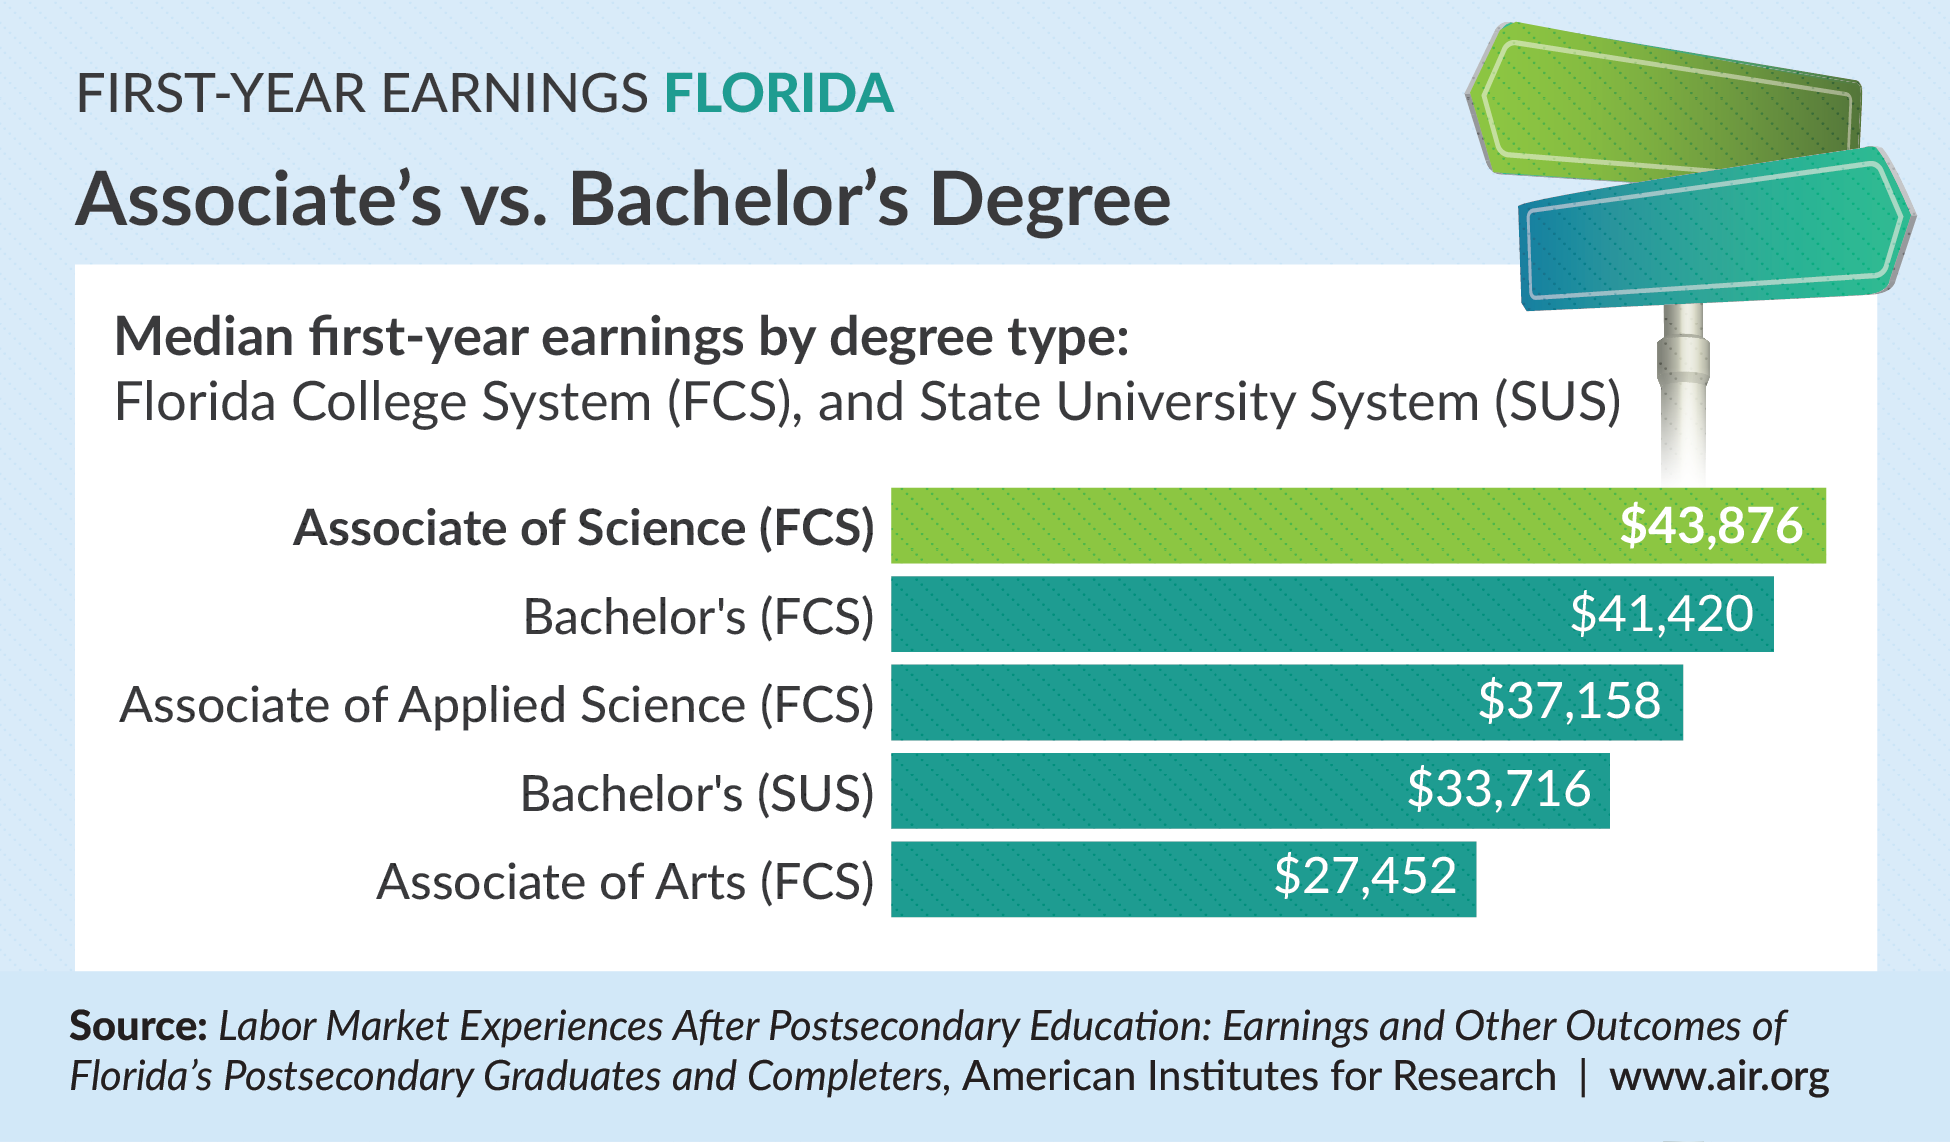 Labor Market Experiences After Postsecondary Education Earnings And Other Outcomes Of Florida S Postsecondary Graduates And Completers American Institutes For Research